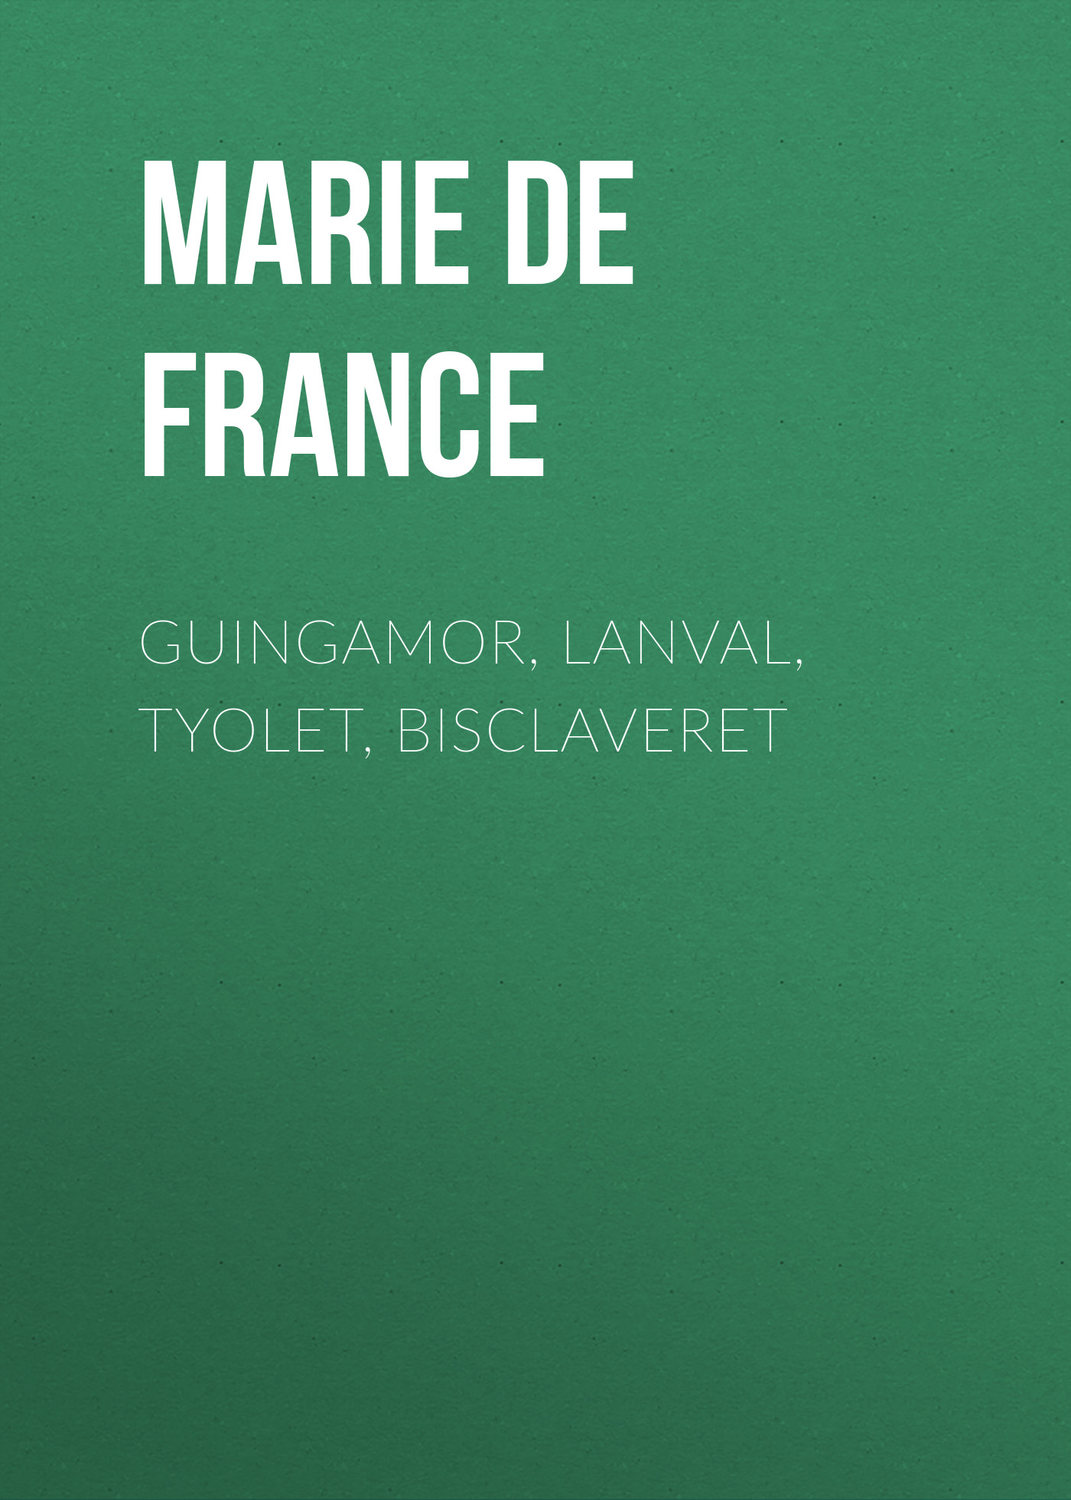 an analysis of lanval a book by maria de france In her lai lanval, marie de france told the story of a woman-hero rescuing the knight lanval from social isolation and unjust persecution.